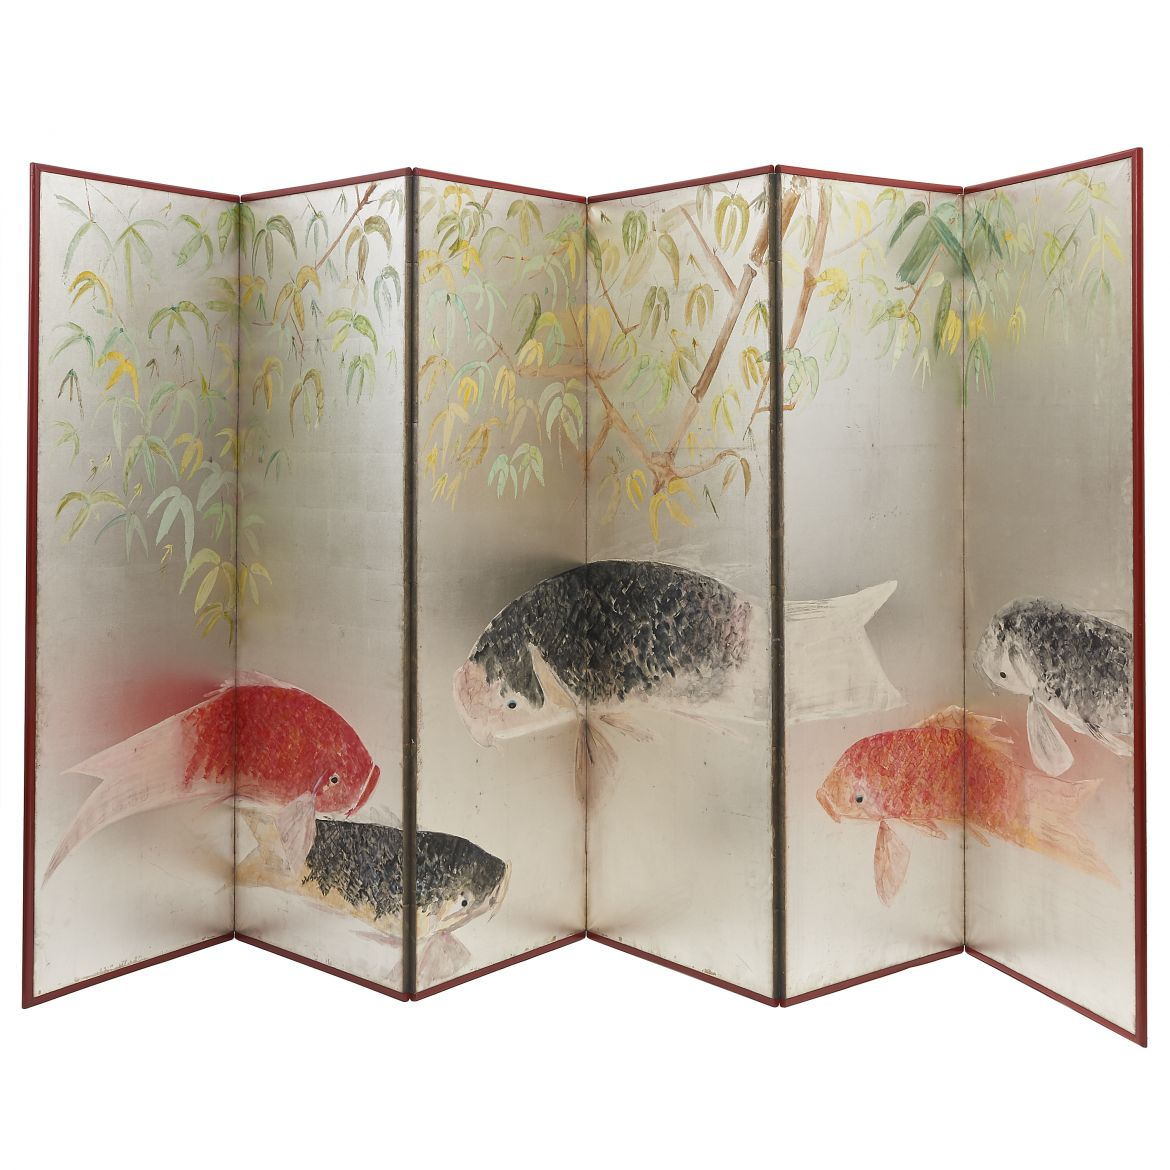 Japanese Carp Screen